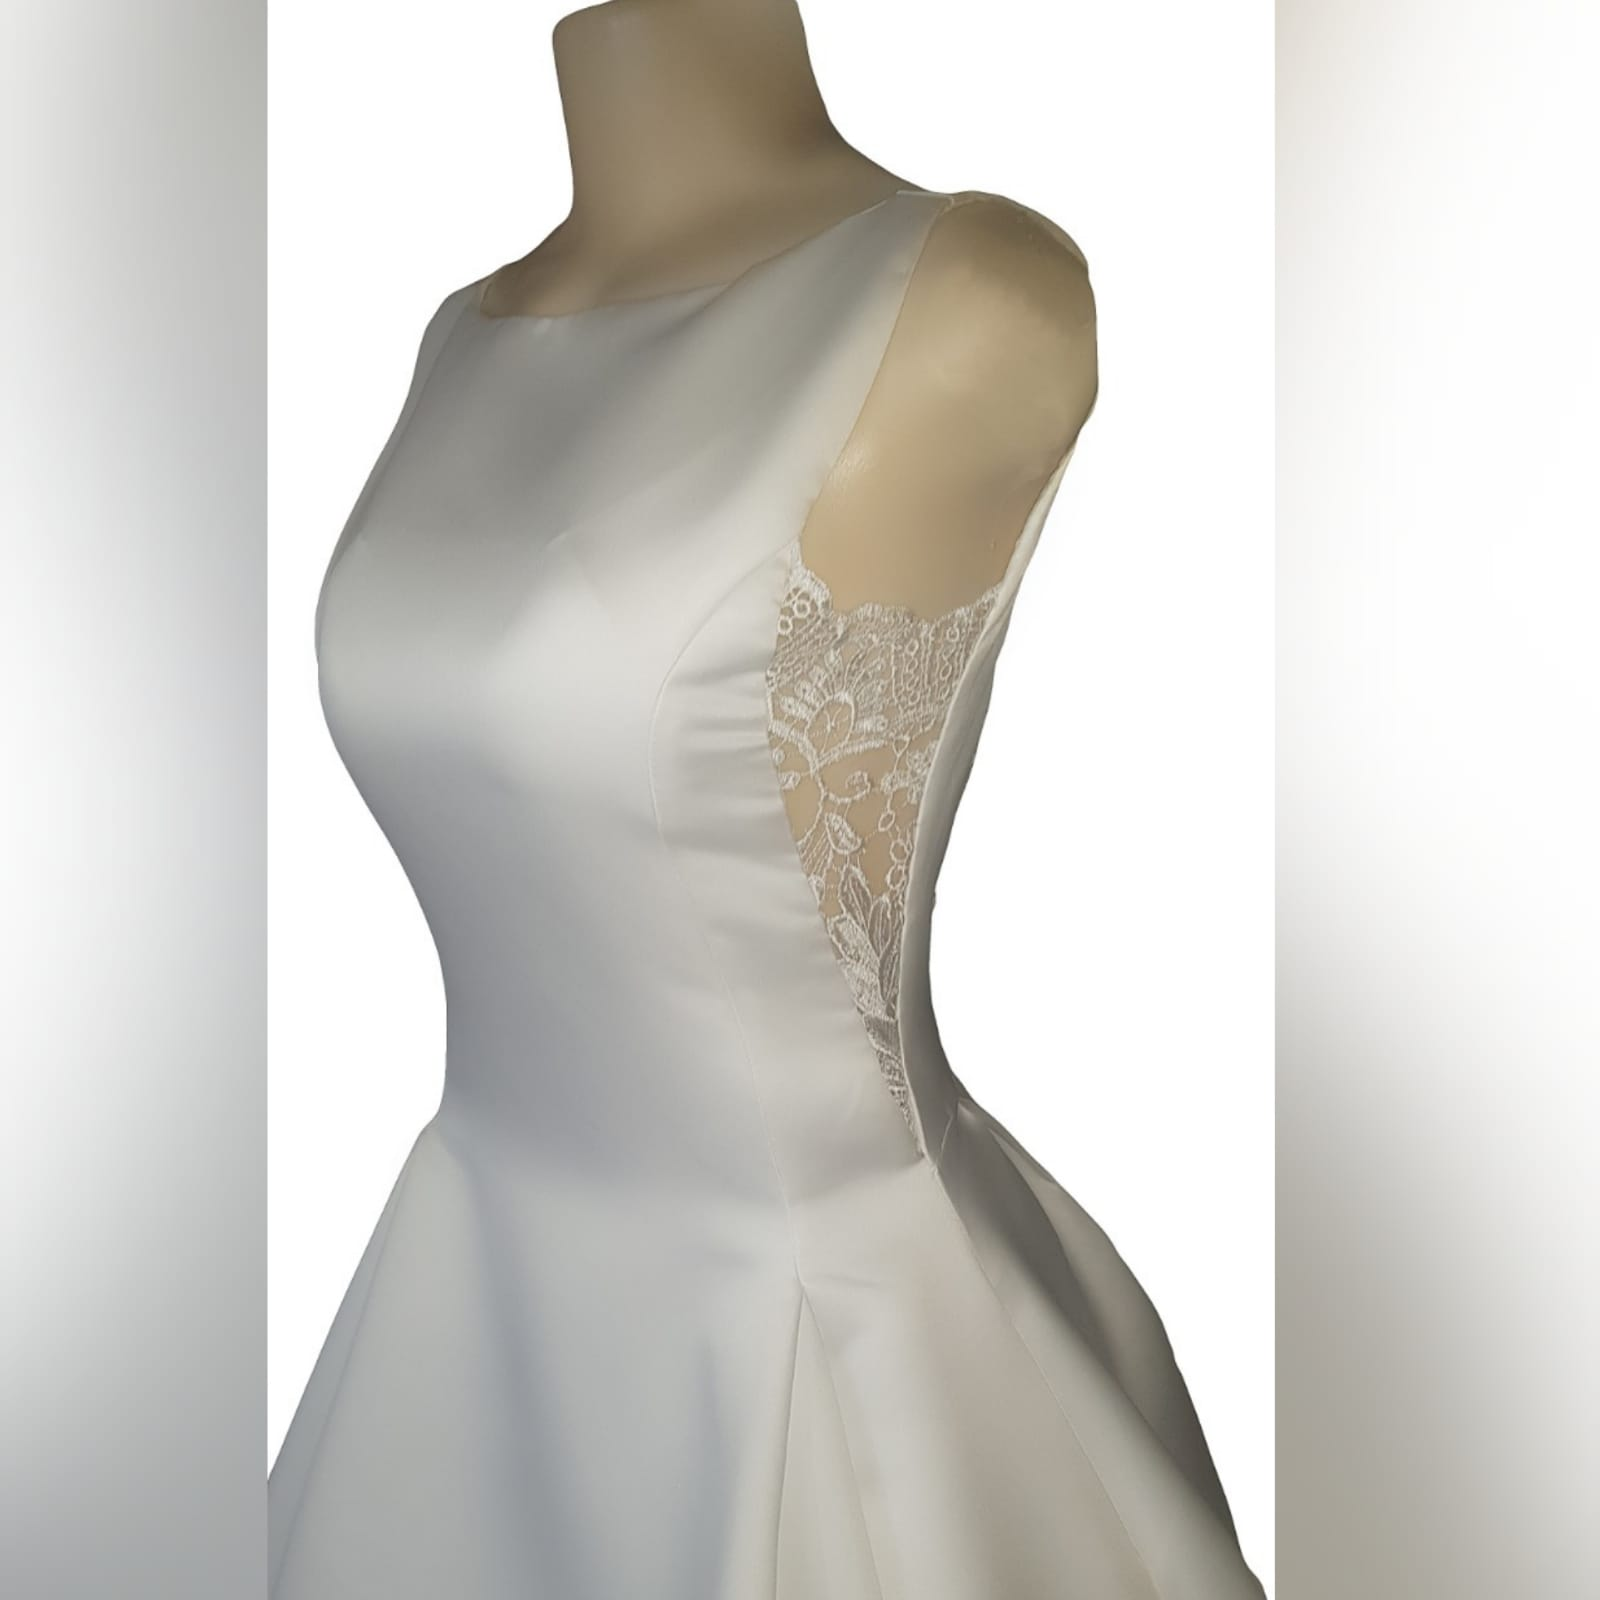 "Elegant satin wedding dress 7 <blockquote>""let yourself be drawn by the stronger pull of that which you truly love. "" rumi</blockquote> a gorgeous, elegant satin wedding dress created especially for my client. A classy fit with a bateau neckline, lace back and sides. Buttons all the way down till the edge of train adding that extra touch of sophistication. Designed with pockets to make life easier for the bride on her special day"